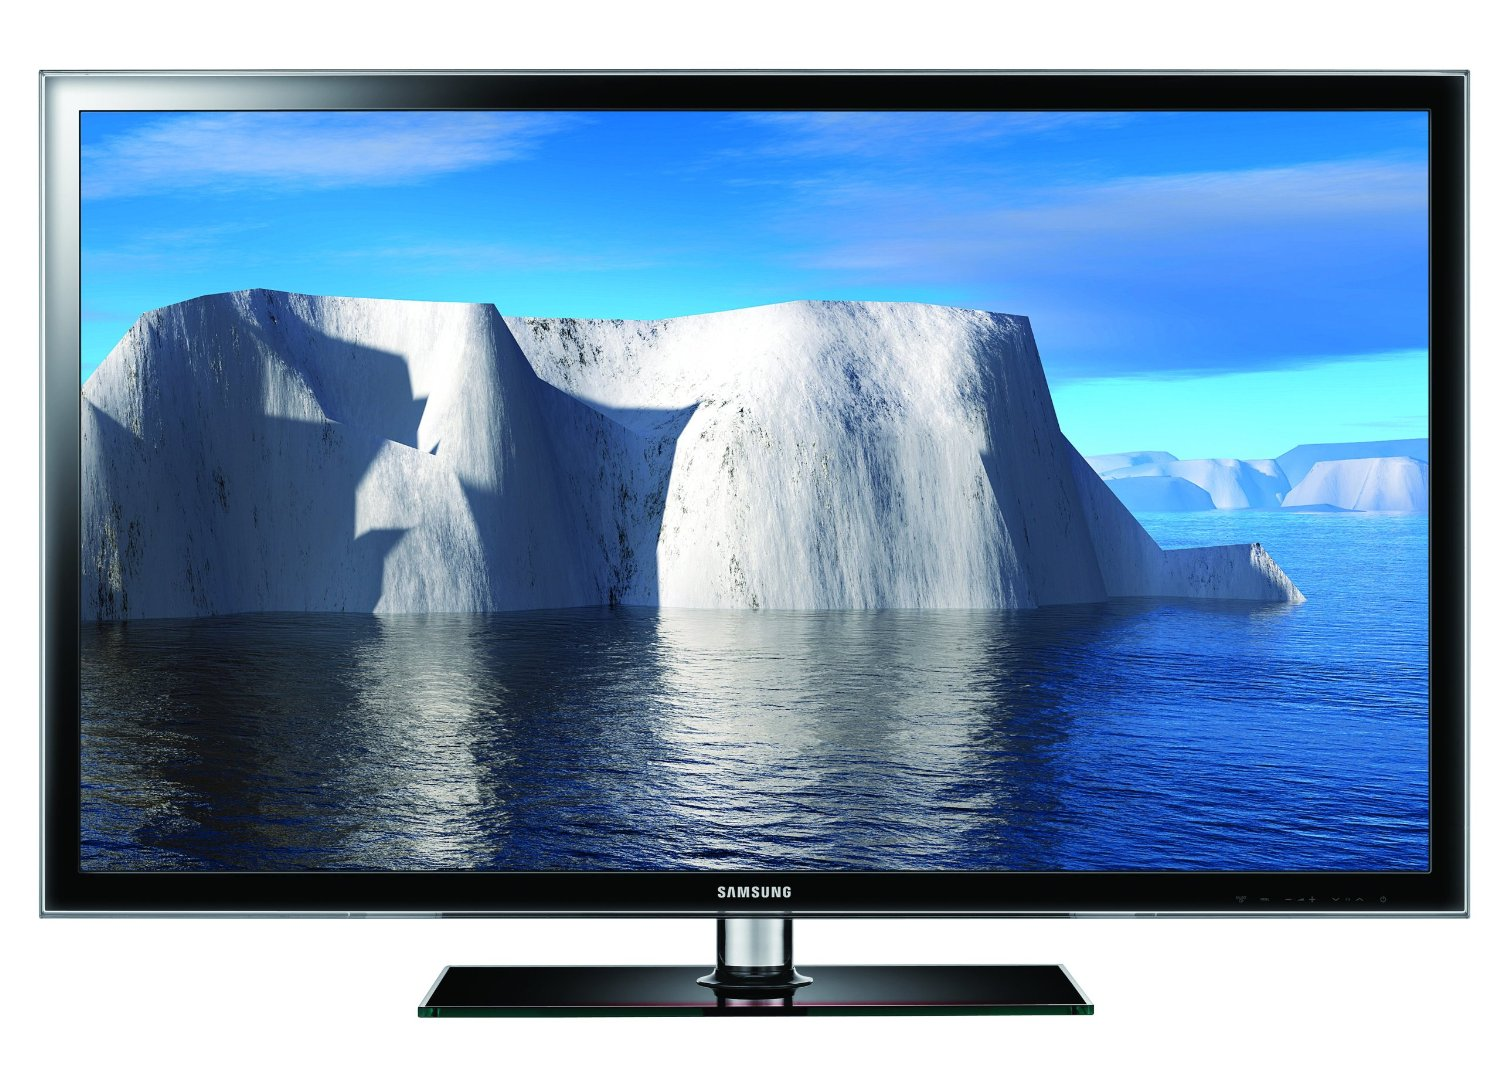 SAMSUNG-UE40F5000-40-LED-WIDESCREEN-TV-FULL-HD-1080P-BUILT-IN-FREEVIEW-BLACK